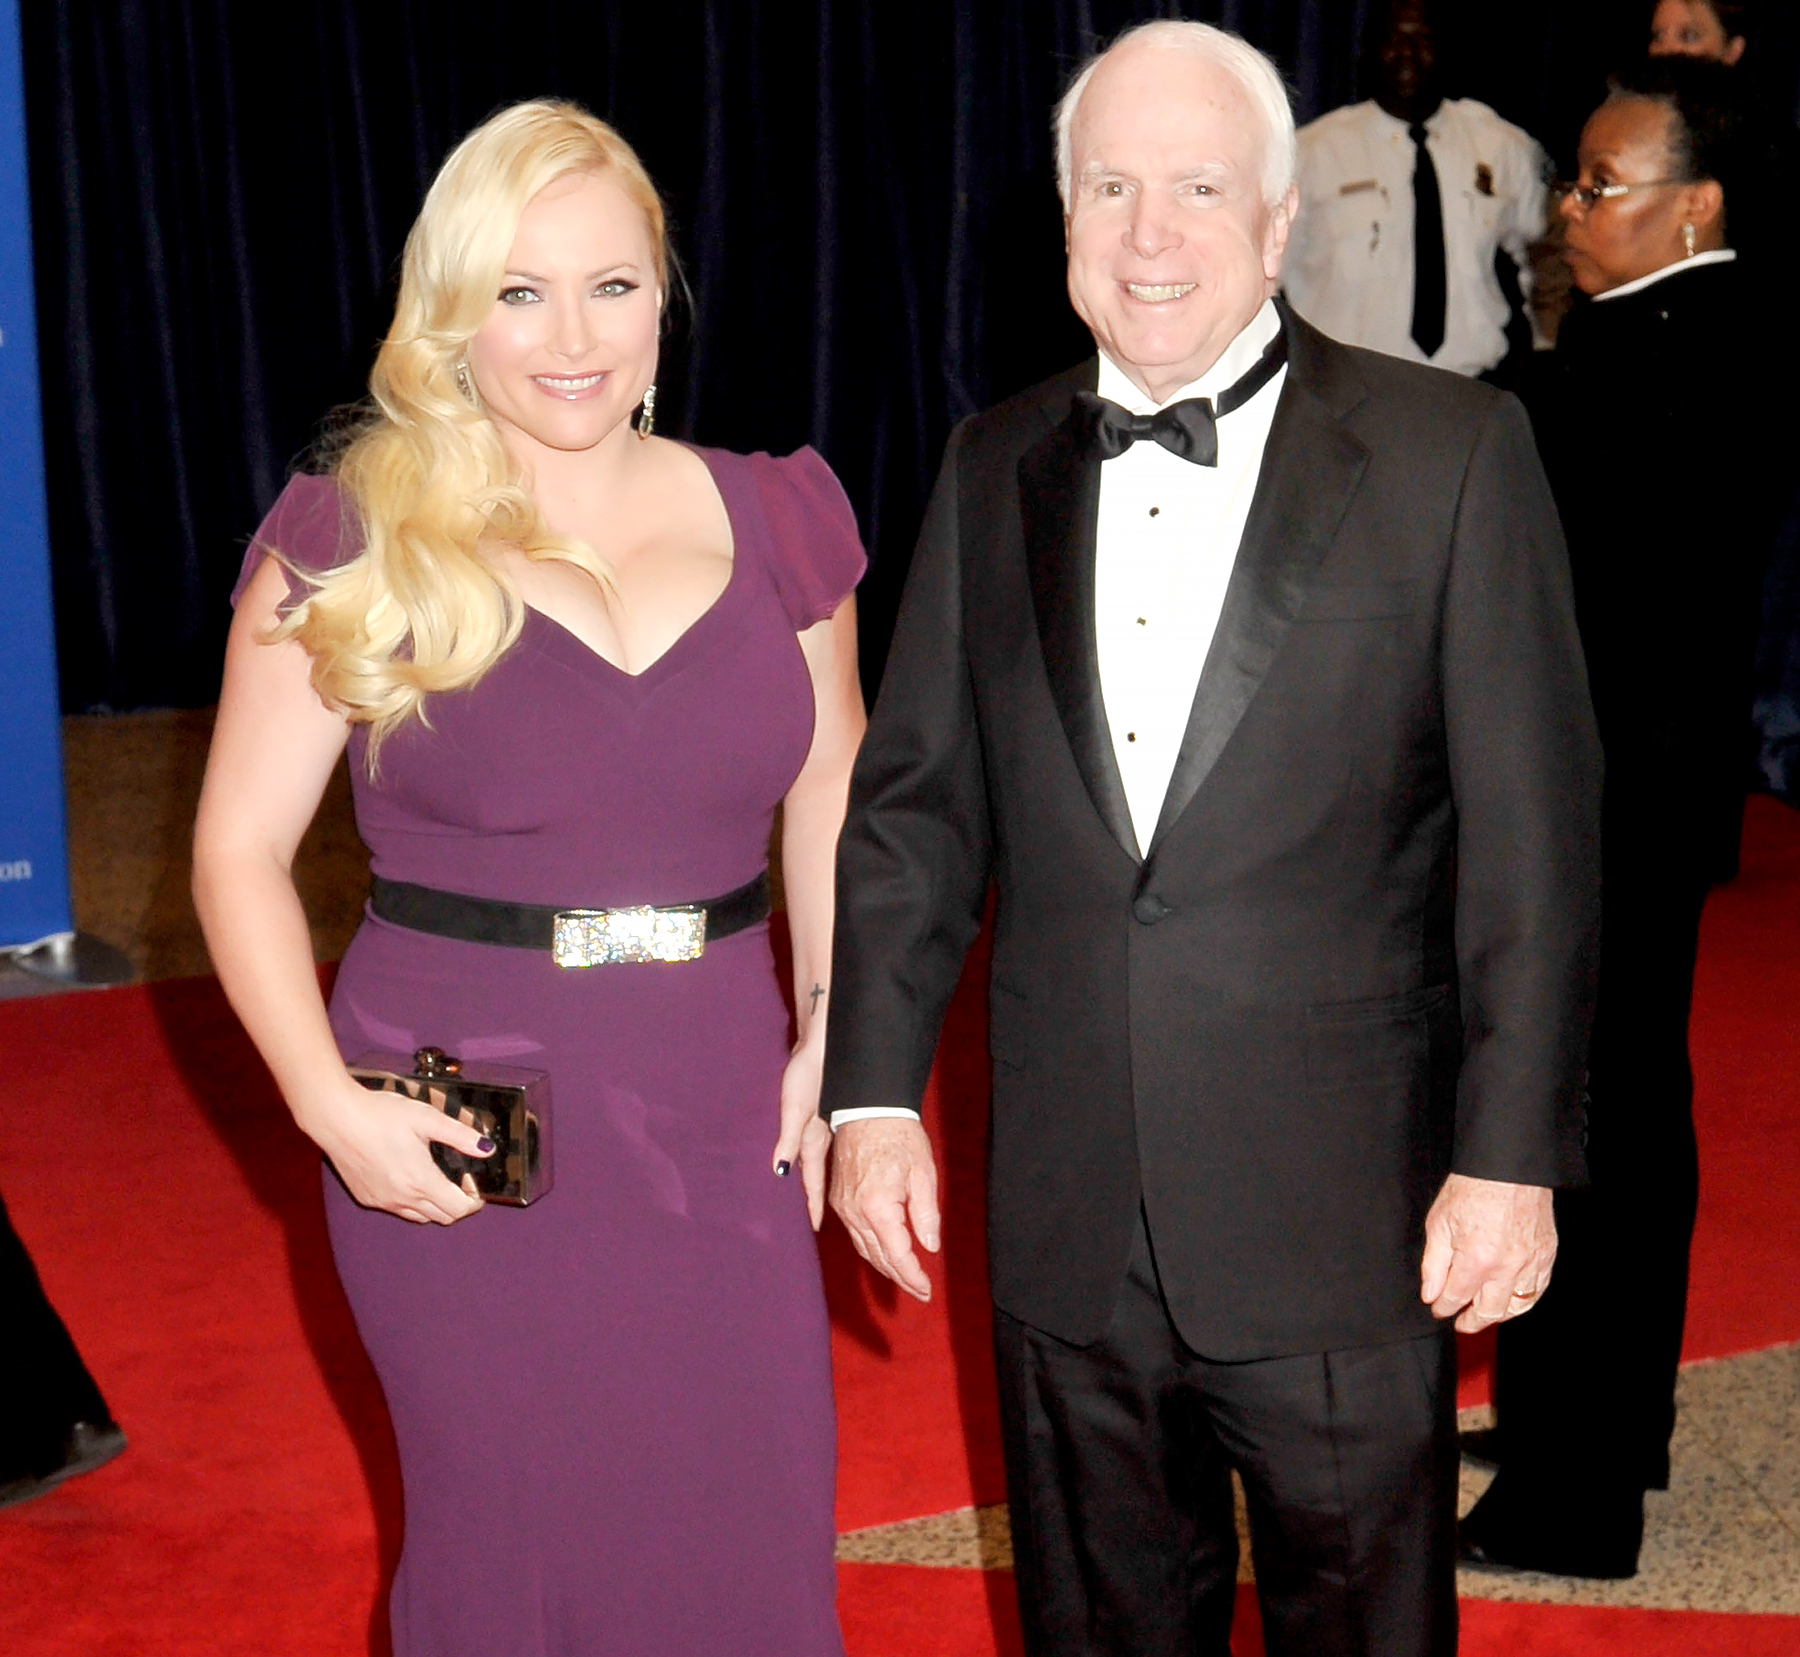 14 Best Meghan Mccain Images On Pinterest: John McCain Hikes With Daughter Meghan McCain After Brain